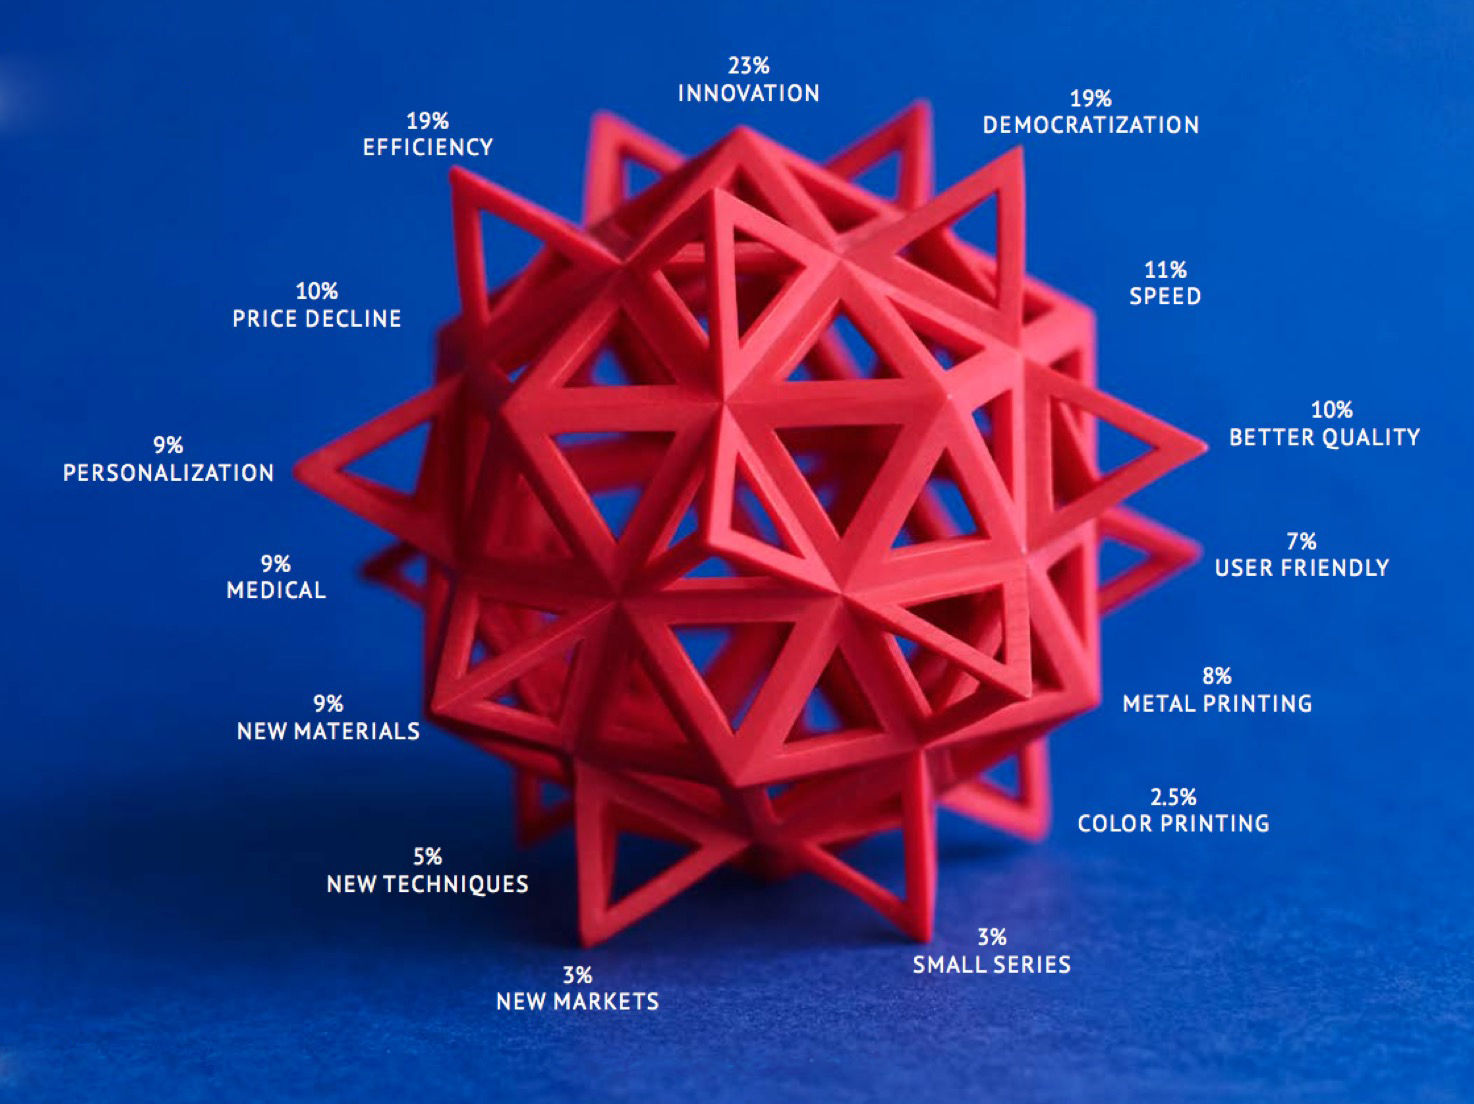 Sculpteo's annual survey of 3D printing usage for 2016